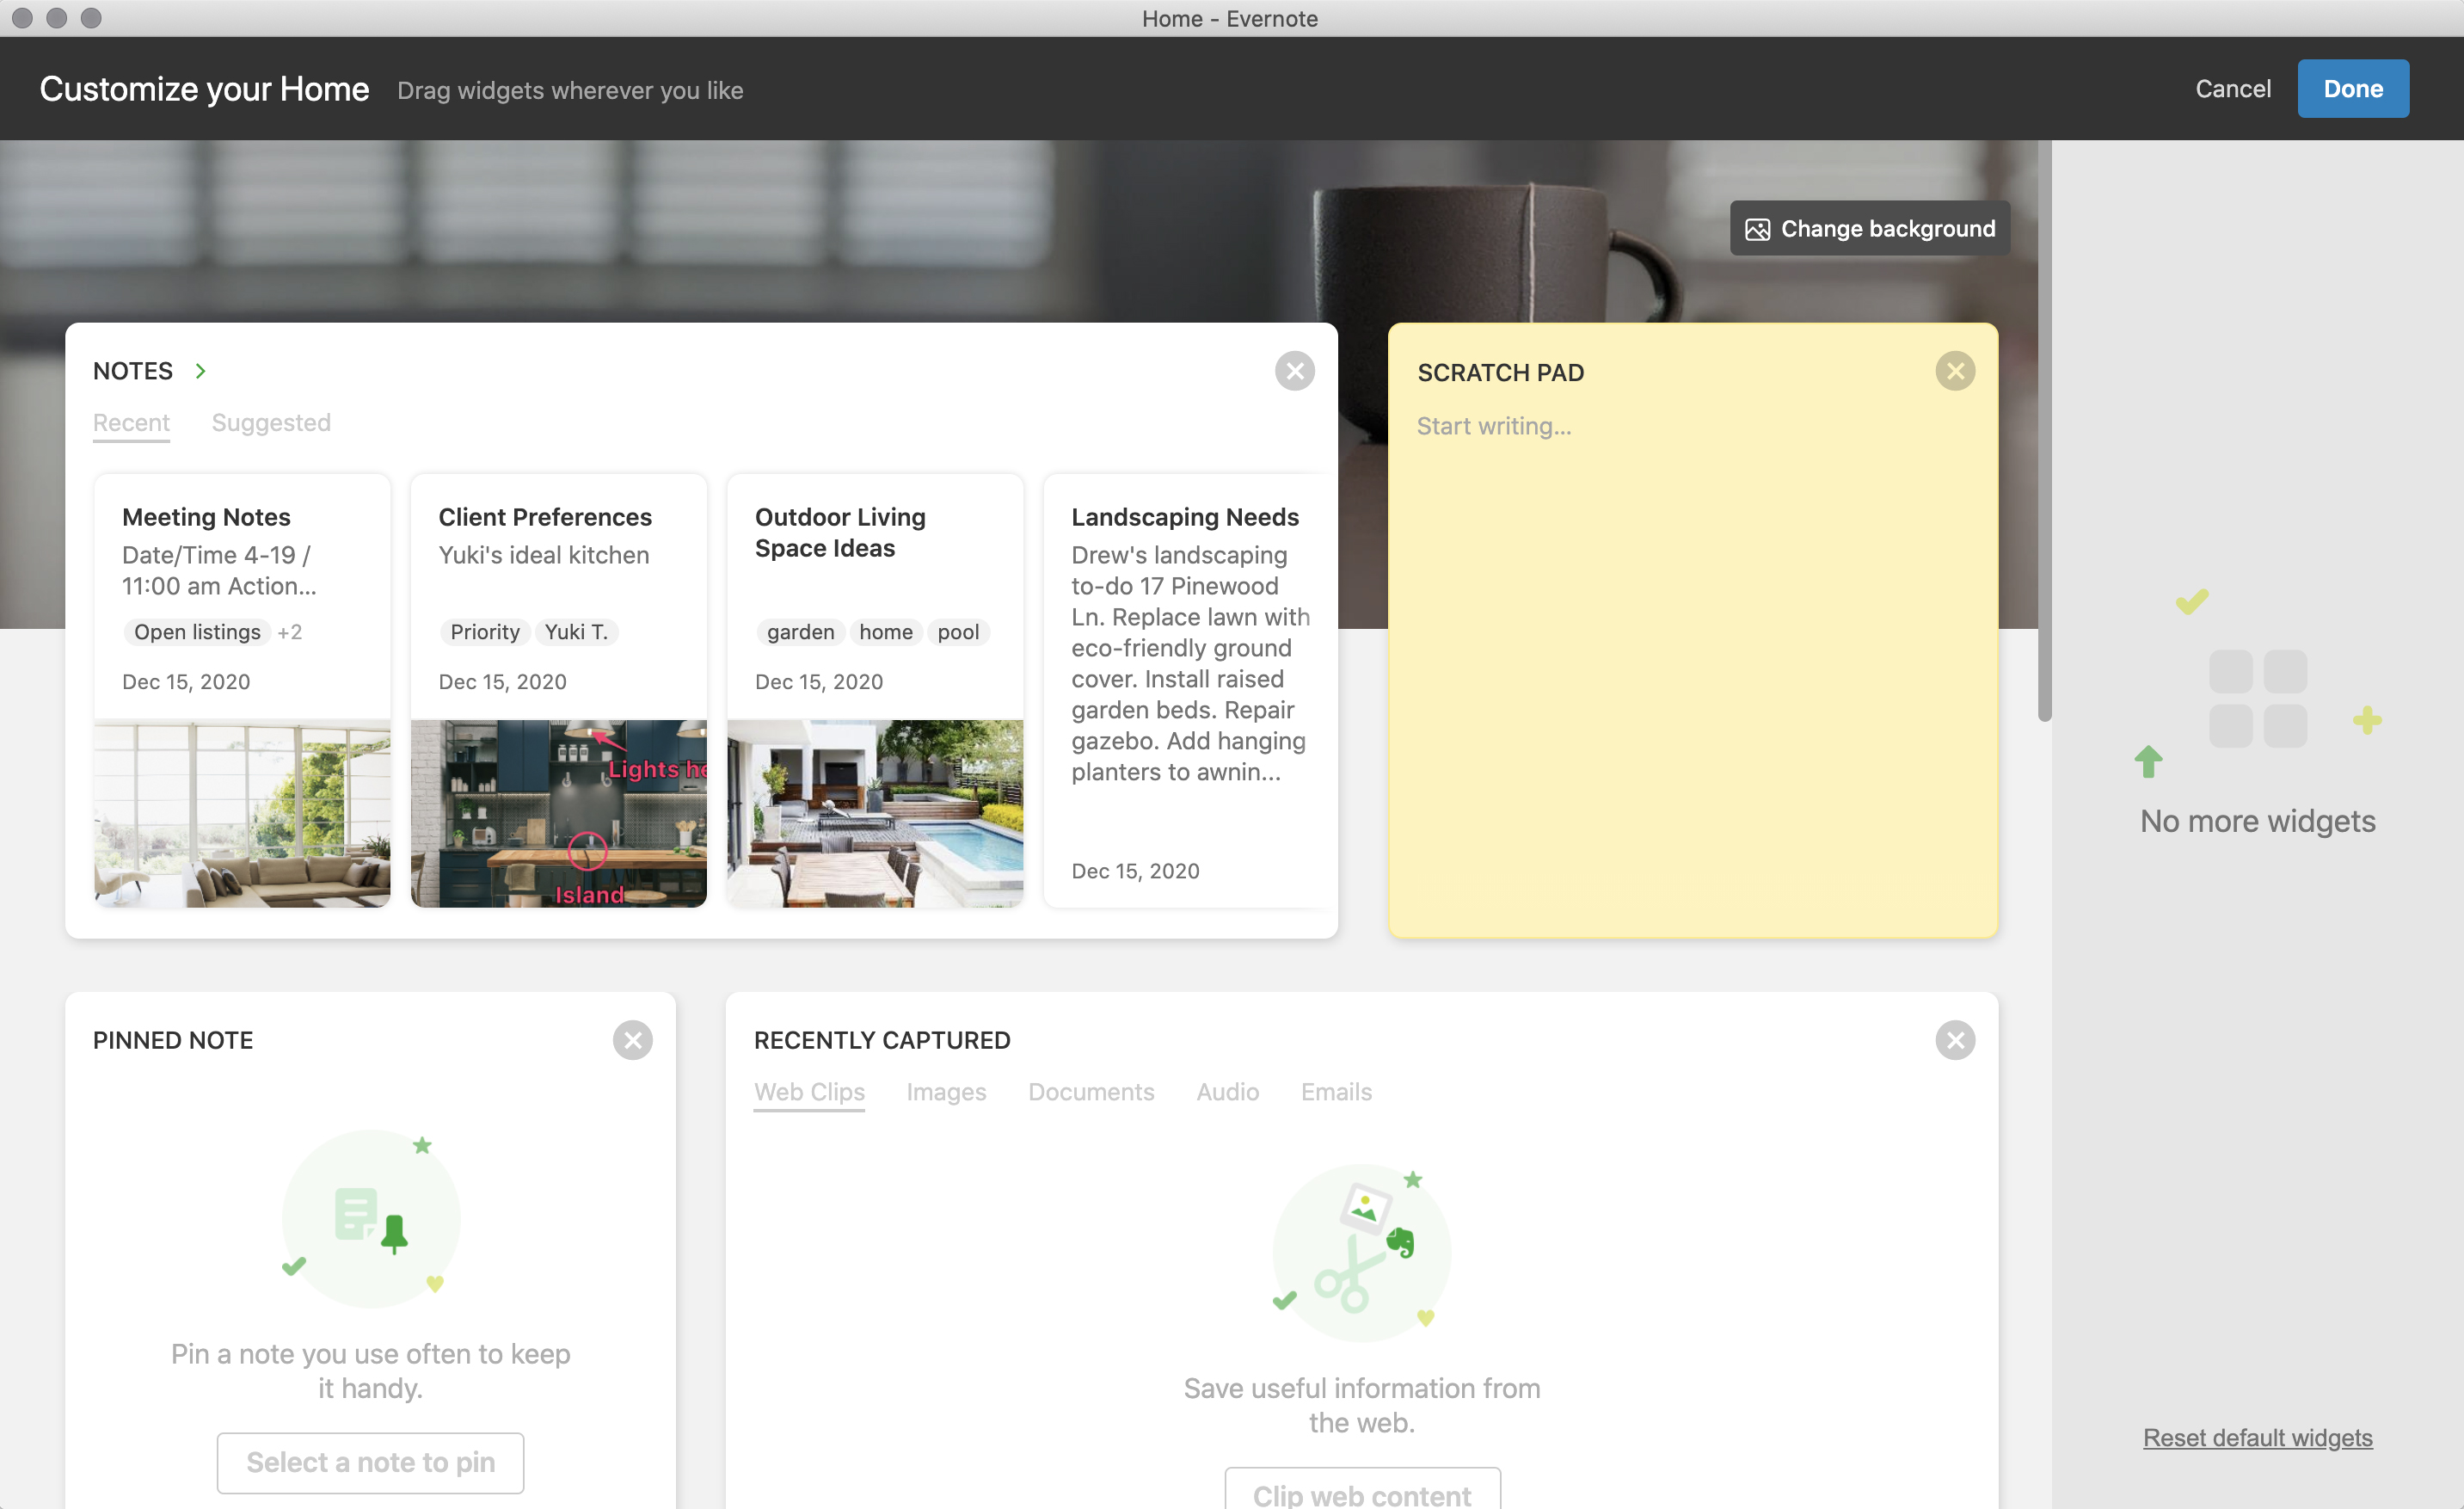 Customize Home in Evernote